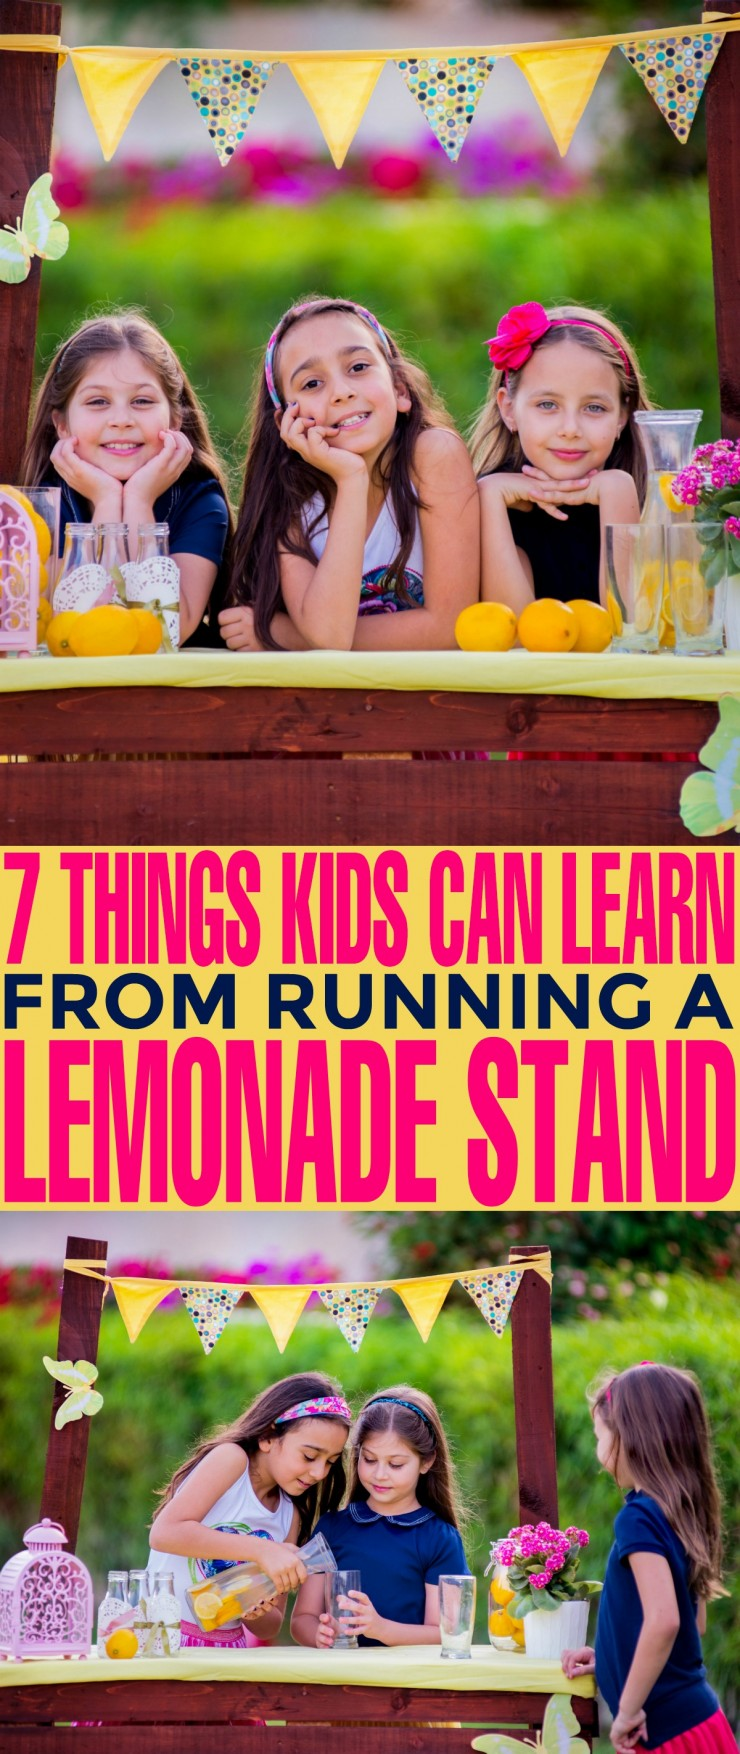 7 Things Kids Can Learn From Running a Lemonade Stand: Lemonade stands are a quintessential summer experience - an experience for kids that is not only fun but can teach them valuable life skills and give them their first taste at entrepreneurship.